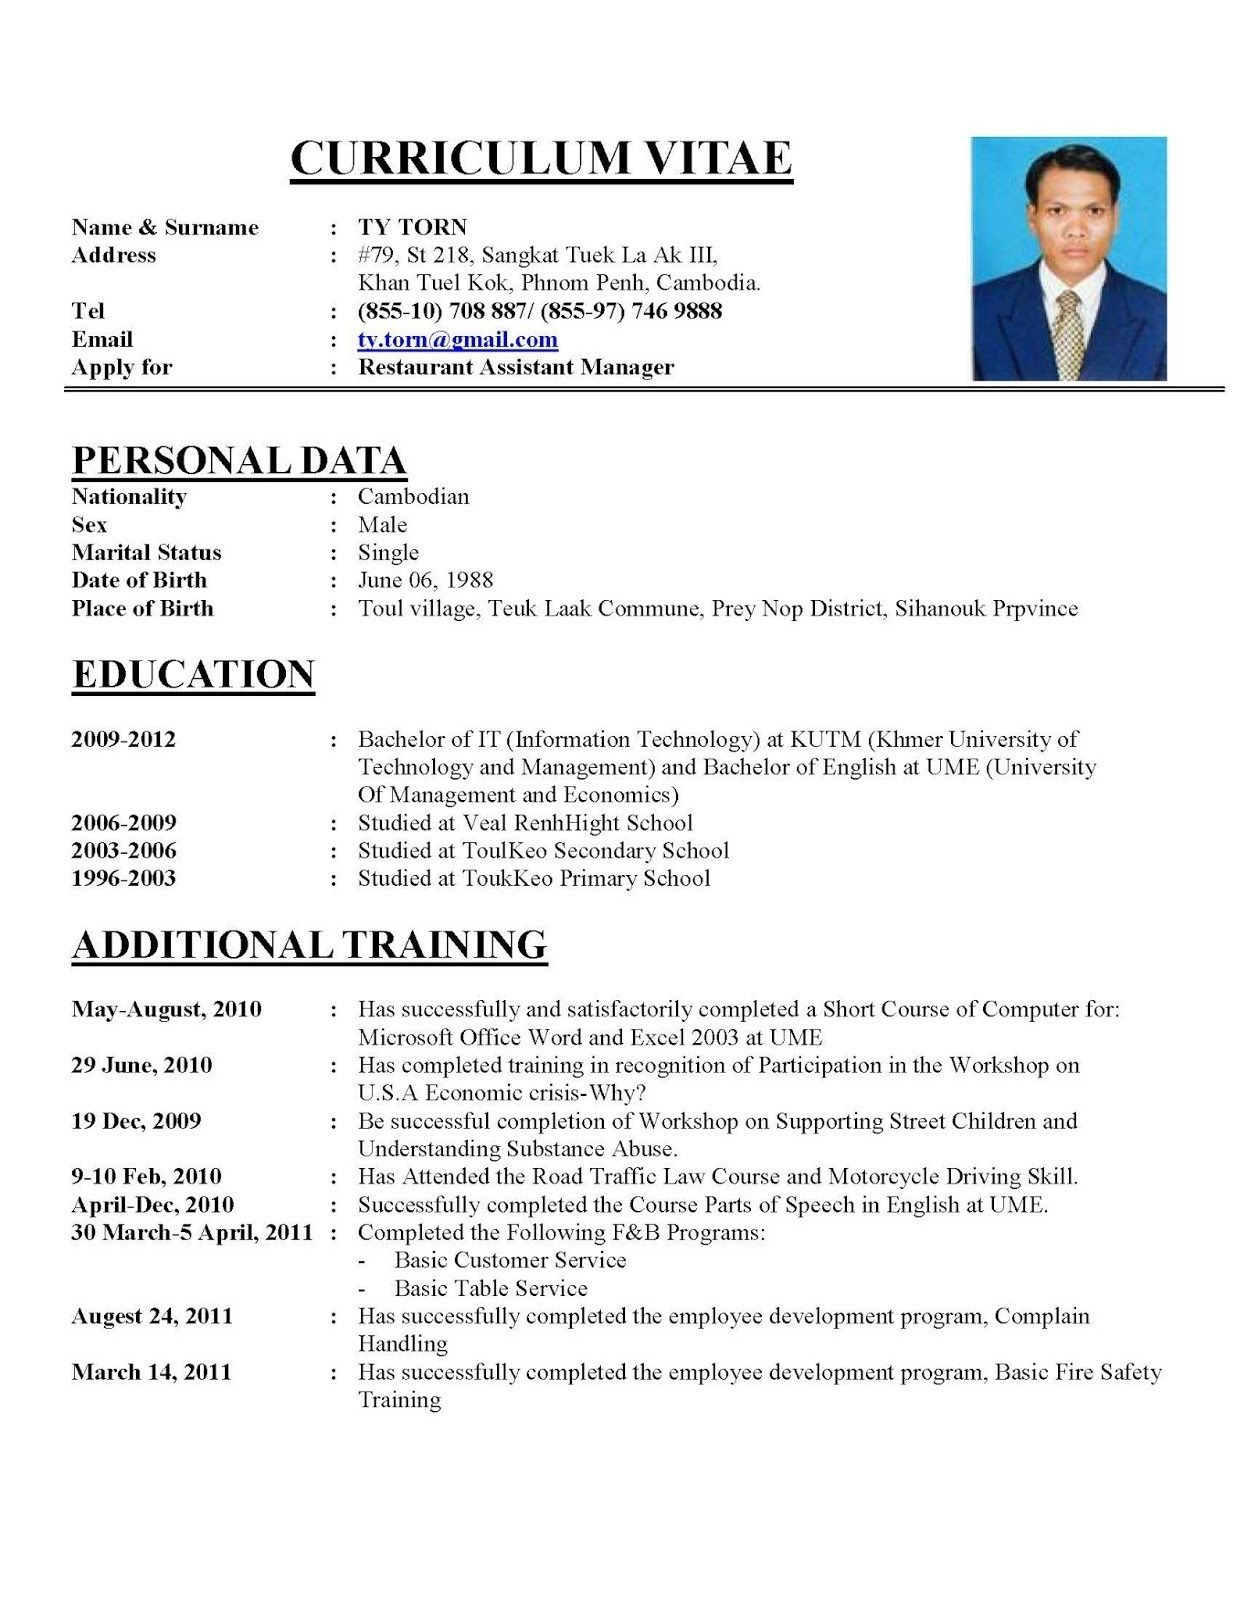 resume templates create free creating cv professional resumes for curriculum archaicawful Resume Creating The Perfect Resume